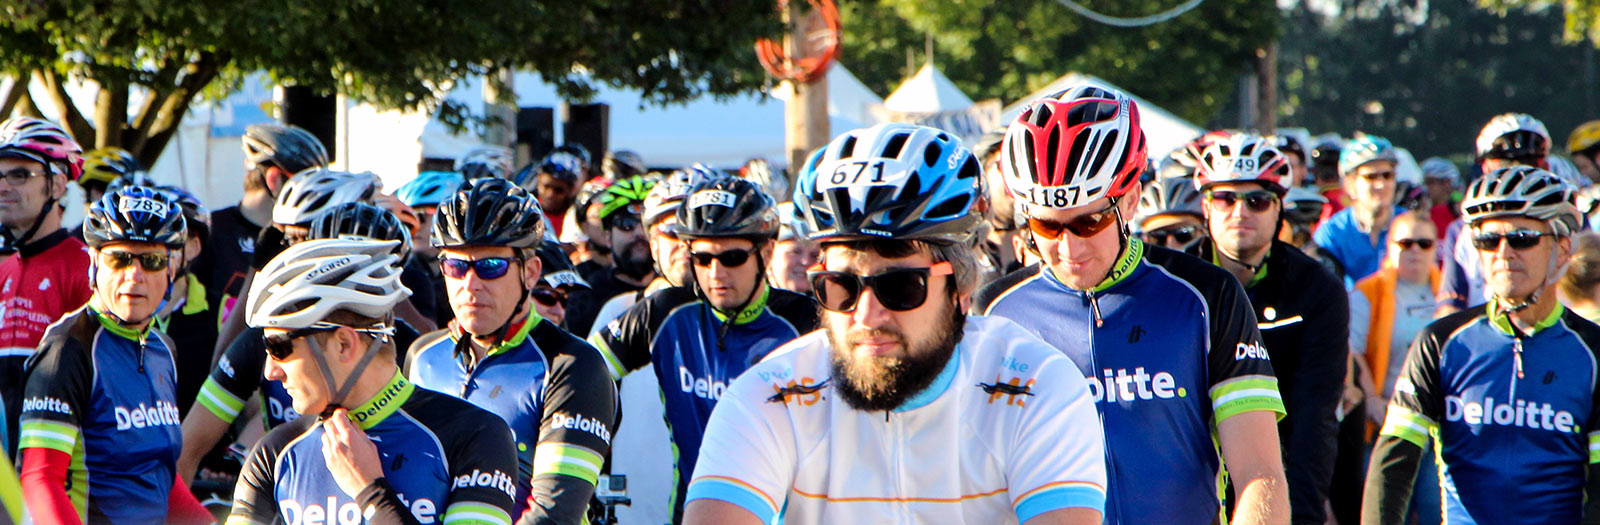 WAS_Bike_2015_banner-image